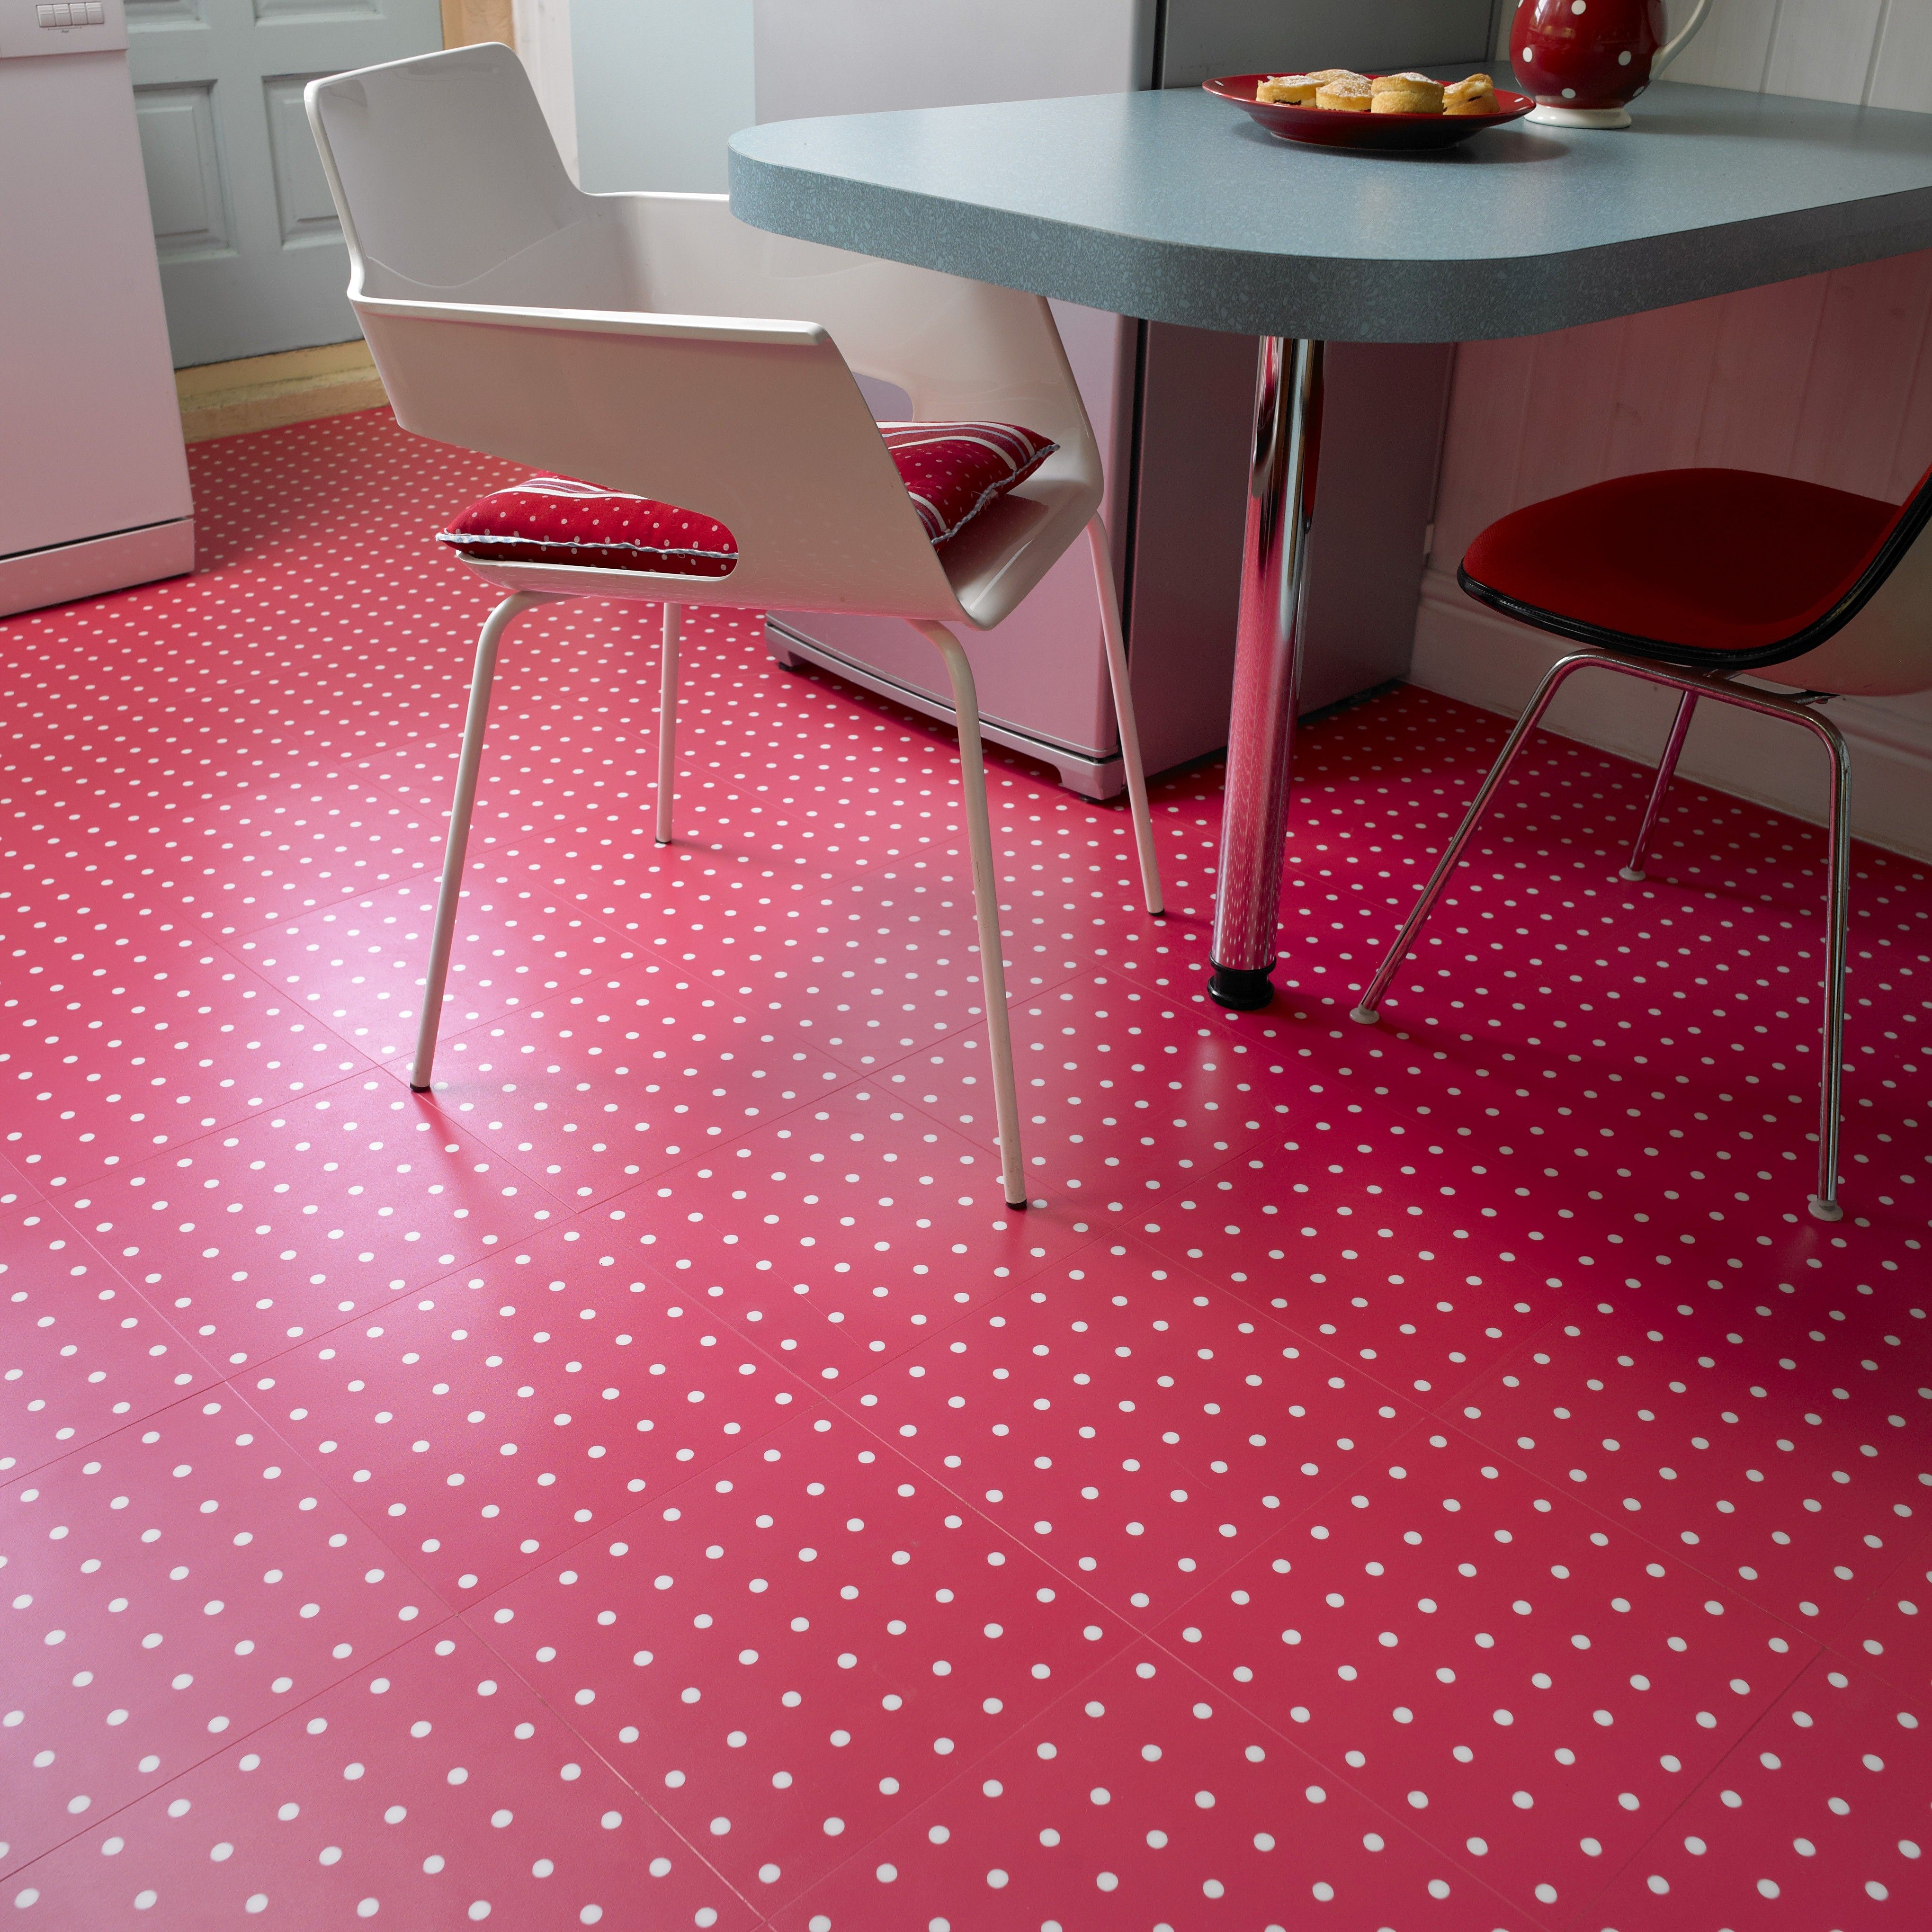 vinyl flooring kitchen Vinyl flooring enables a multitude of designs including concepts inspired by vintage s kitchens